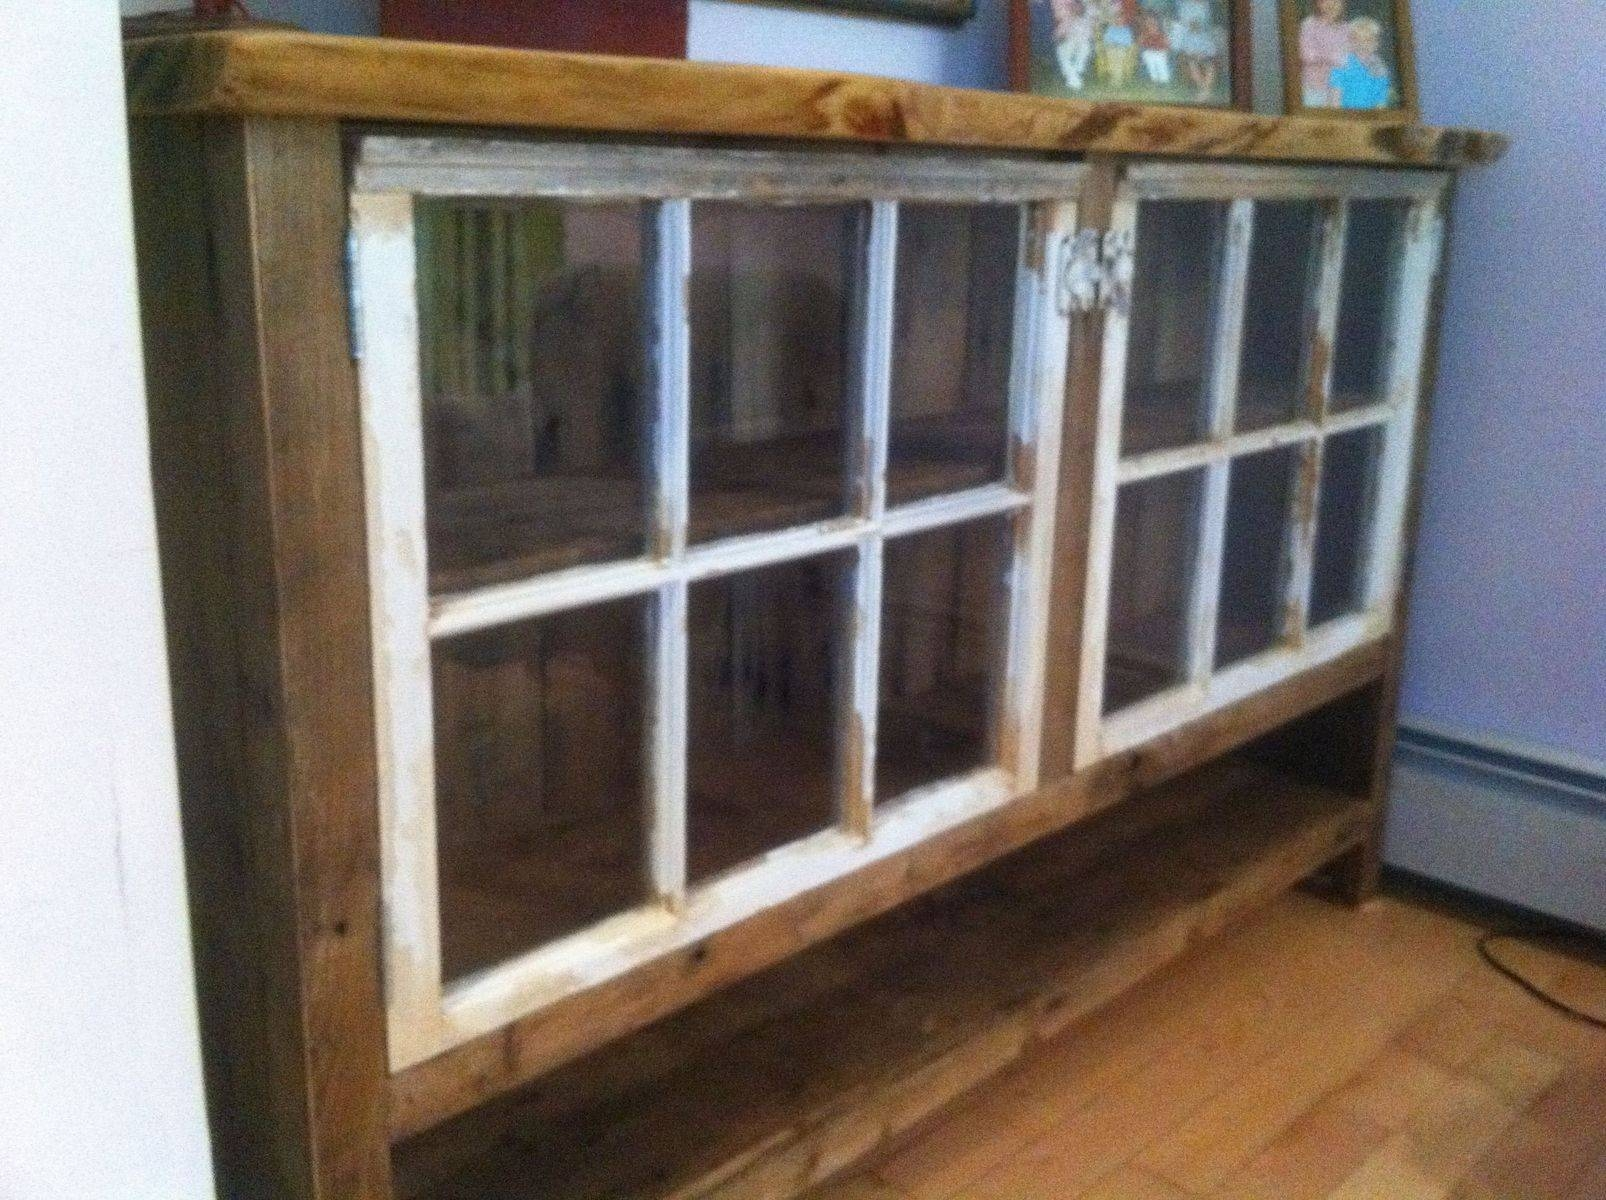 Handmade Reclaimed Wood Sideboard With Recycled Windowswooden Throughout Most Popular Reclaimed Wood Sideboards (View 8 of 15)